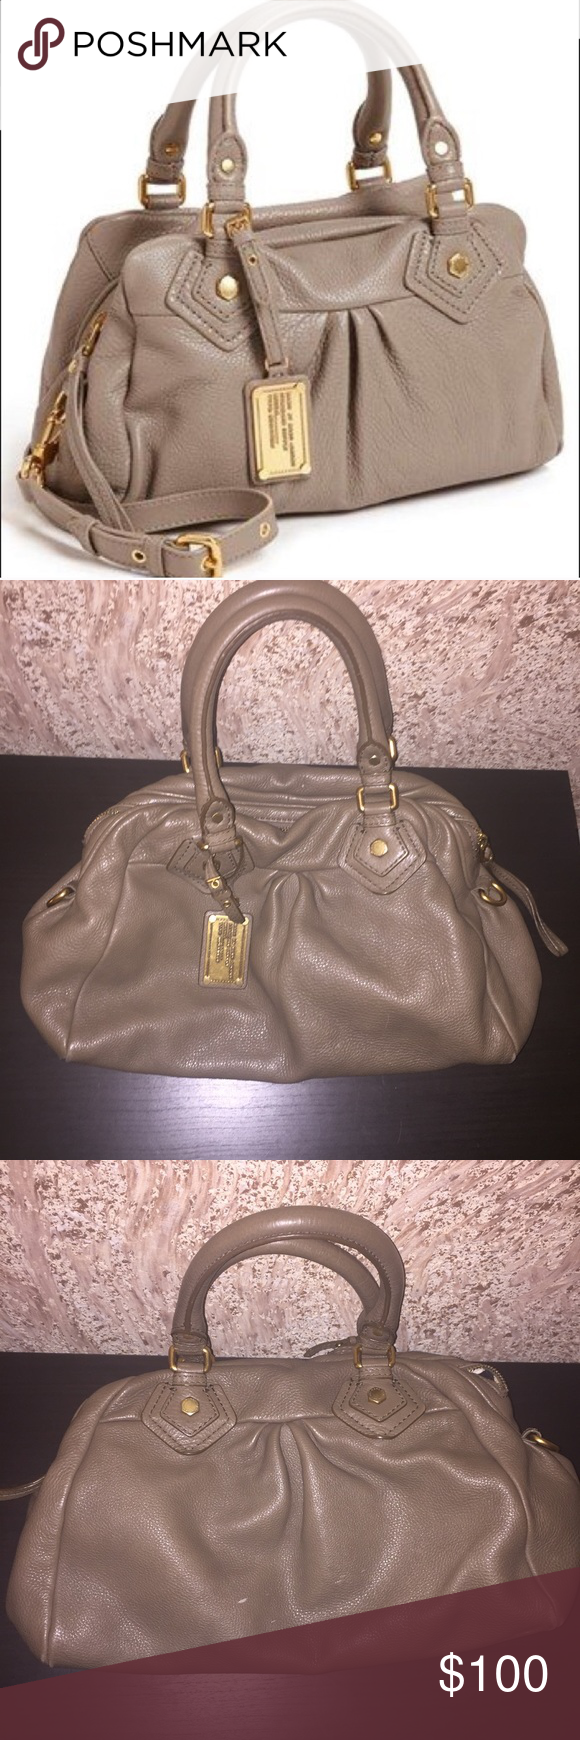 Marc Jacobs Classic Q Baby Groovee Leather Satchel Gorgeous Authentic Marc  Jacobs Classic Q Baby Groovee Satchel. Color: Gray-brown/Dark Taupe Pre  loved, ...